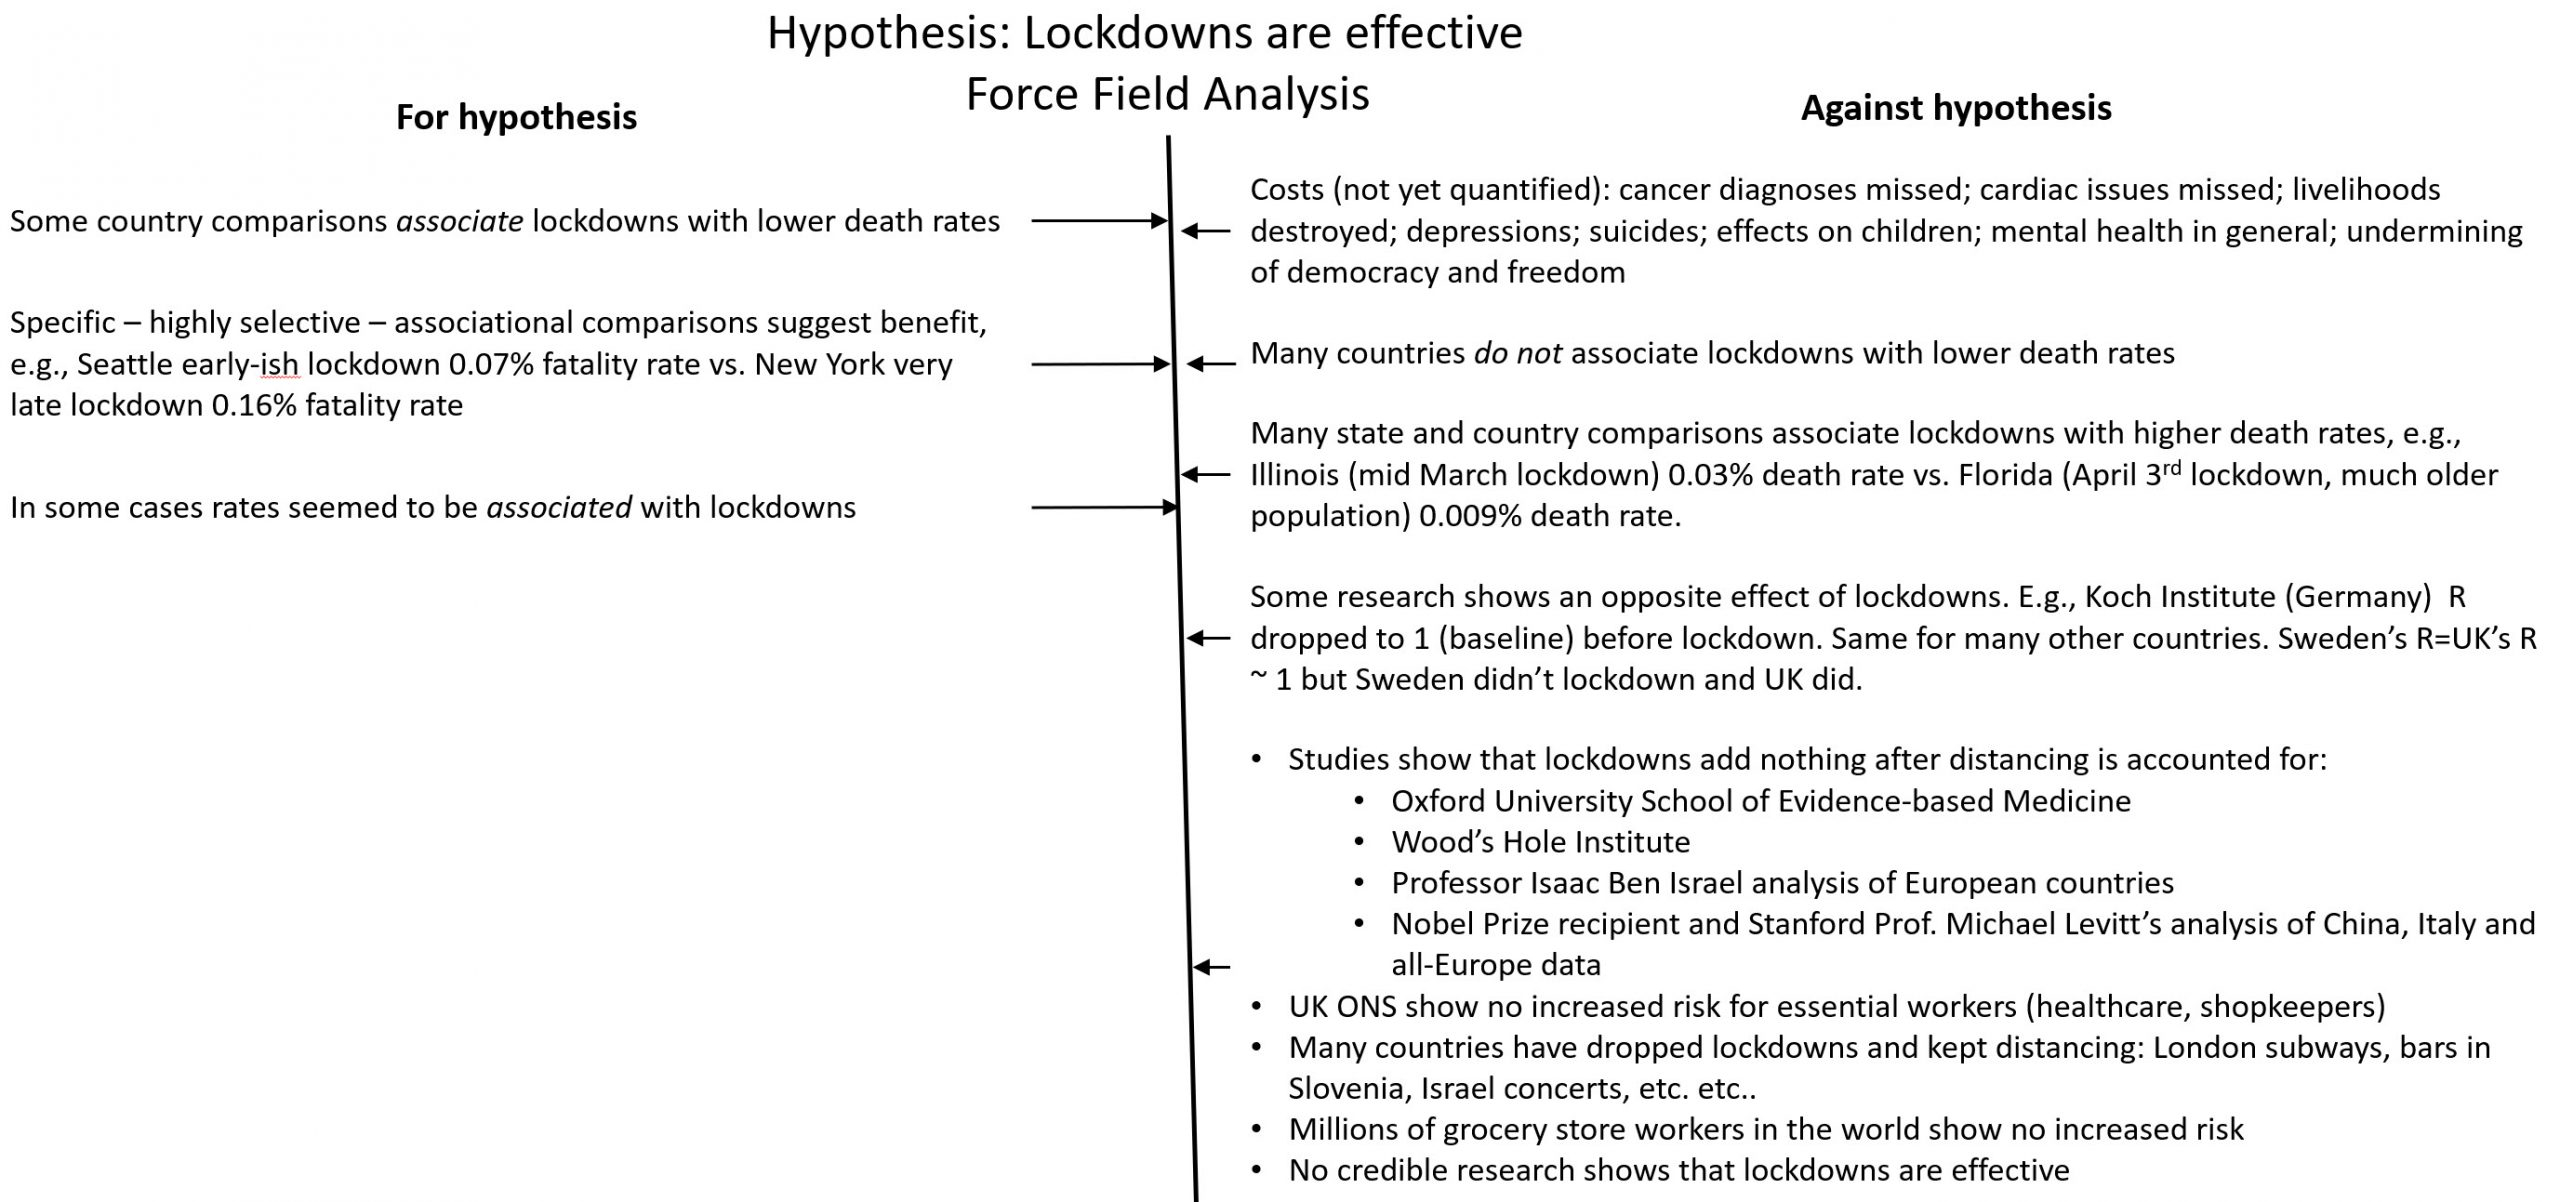 Force field analysis of lockdown effectiveness